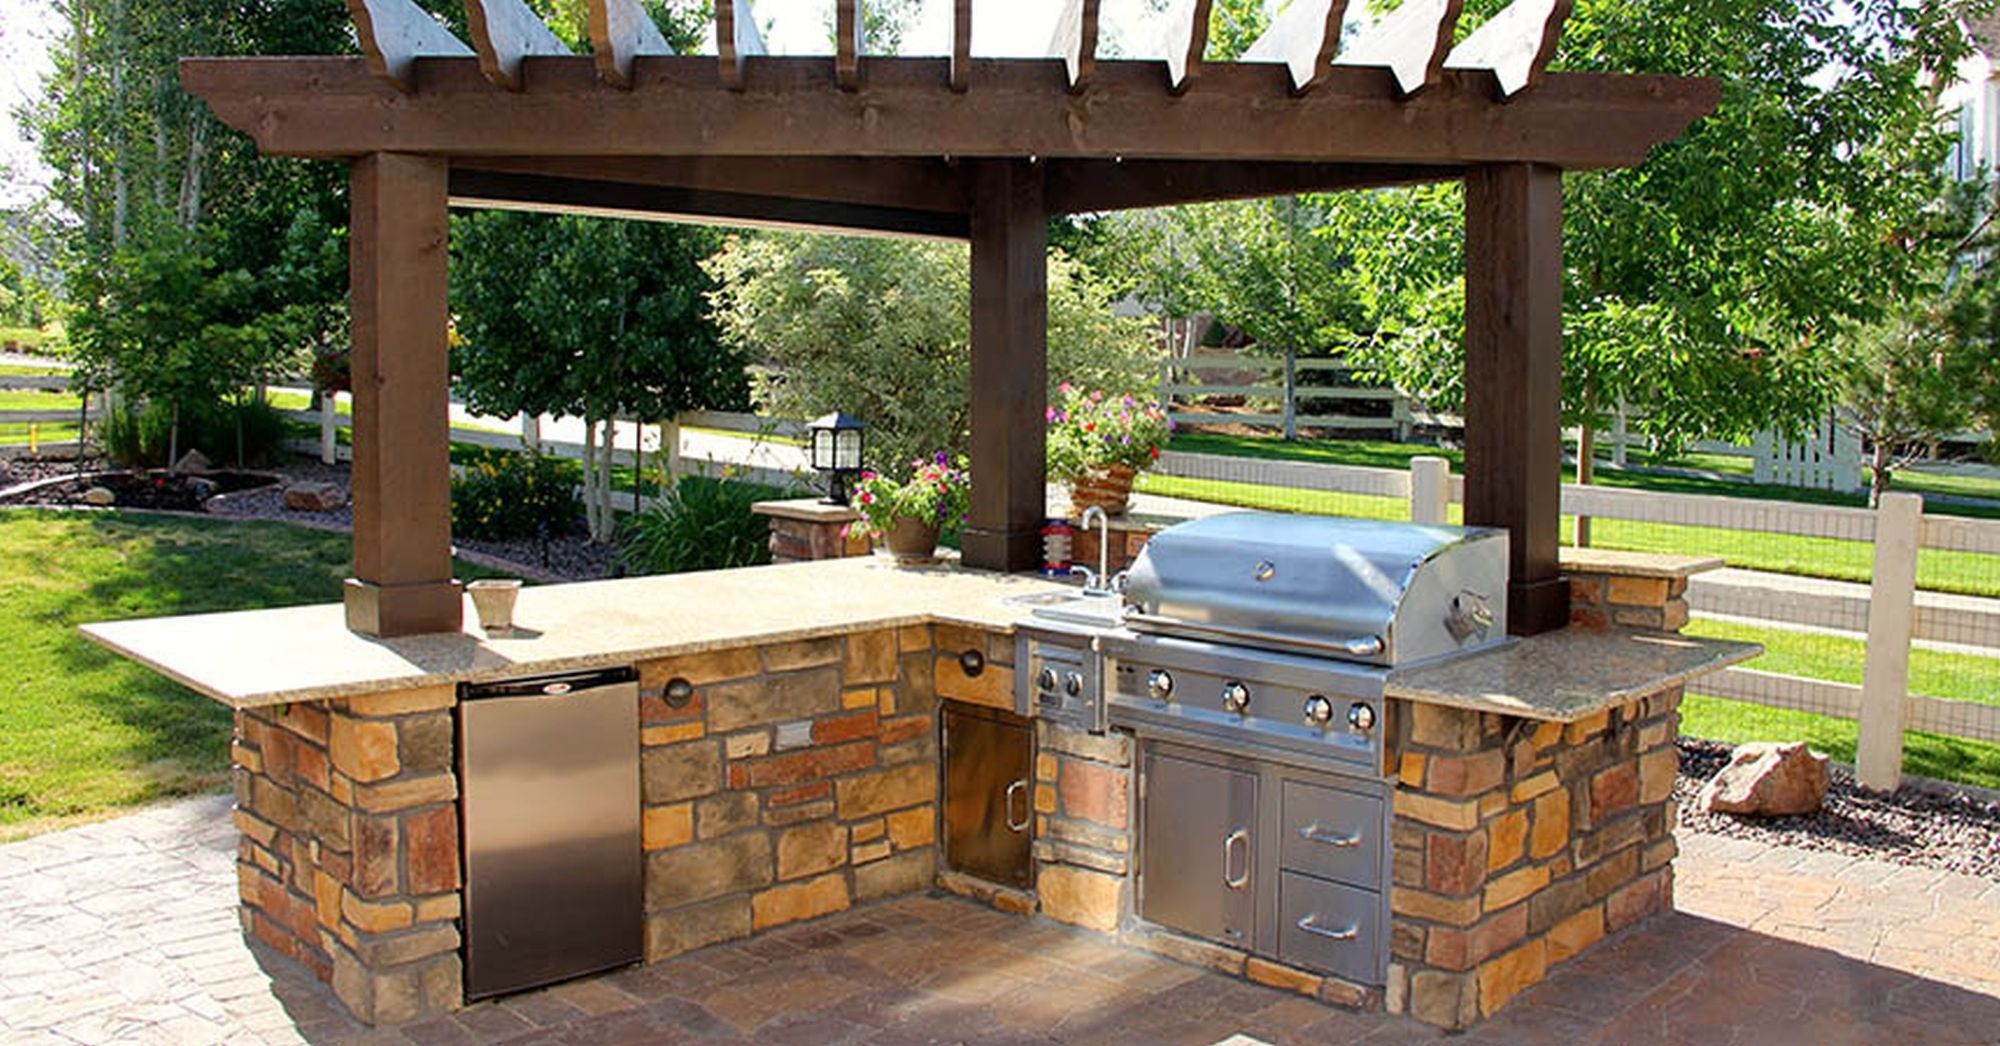 Patio Outdoor Set Kitchen Designs With Stone Wall Also Grill And Countertops As Well As Pergola Small Outdoor Kitchens Outdoor Bbq Backyard Patio